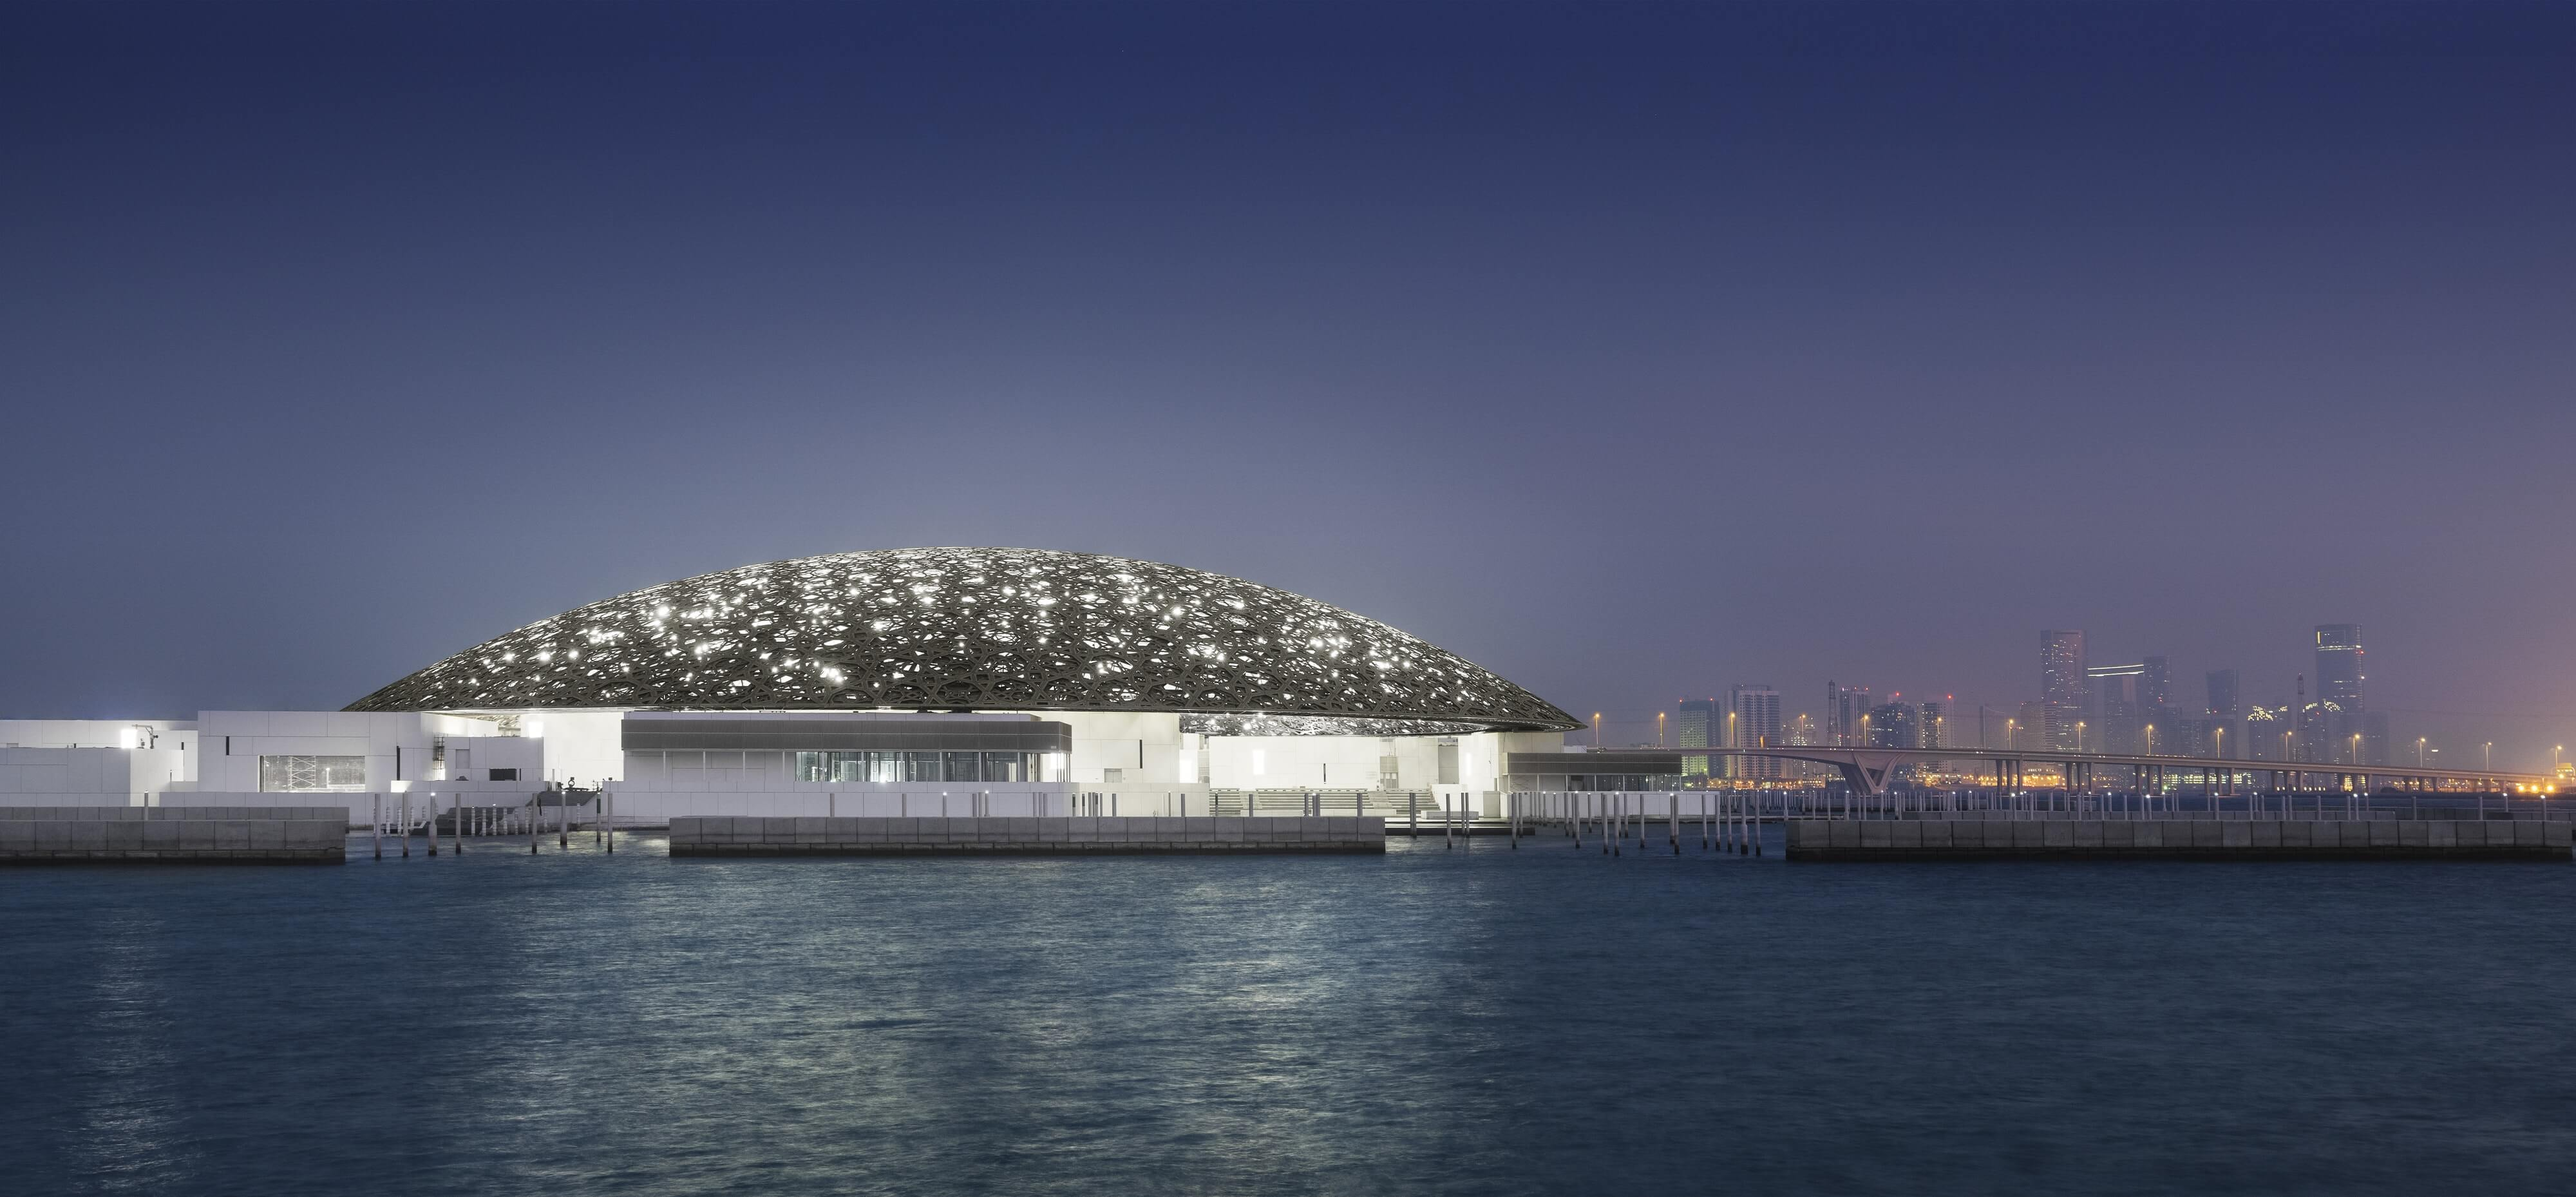 The Louvre Abu Dhabi by night - Photography by Mohamed Somji © Louvre Abu Dhabi